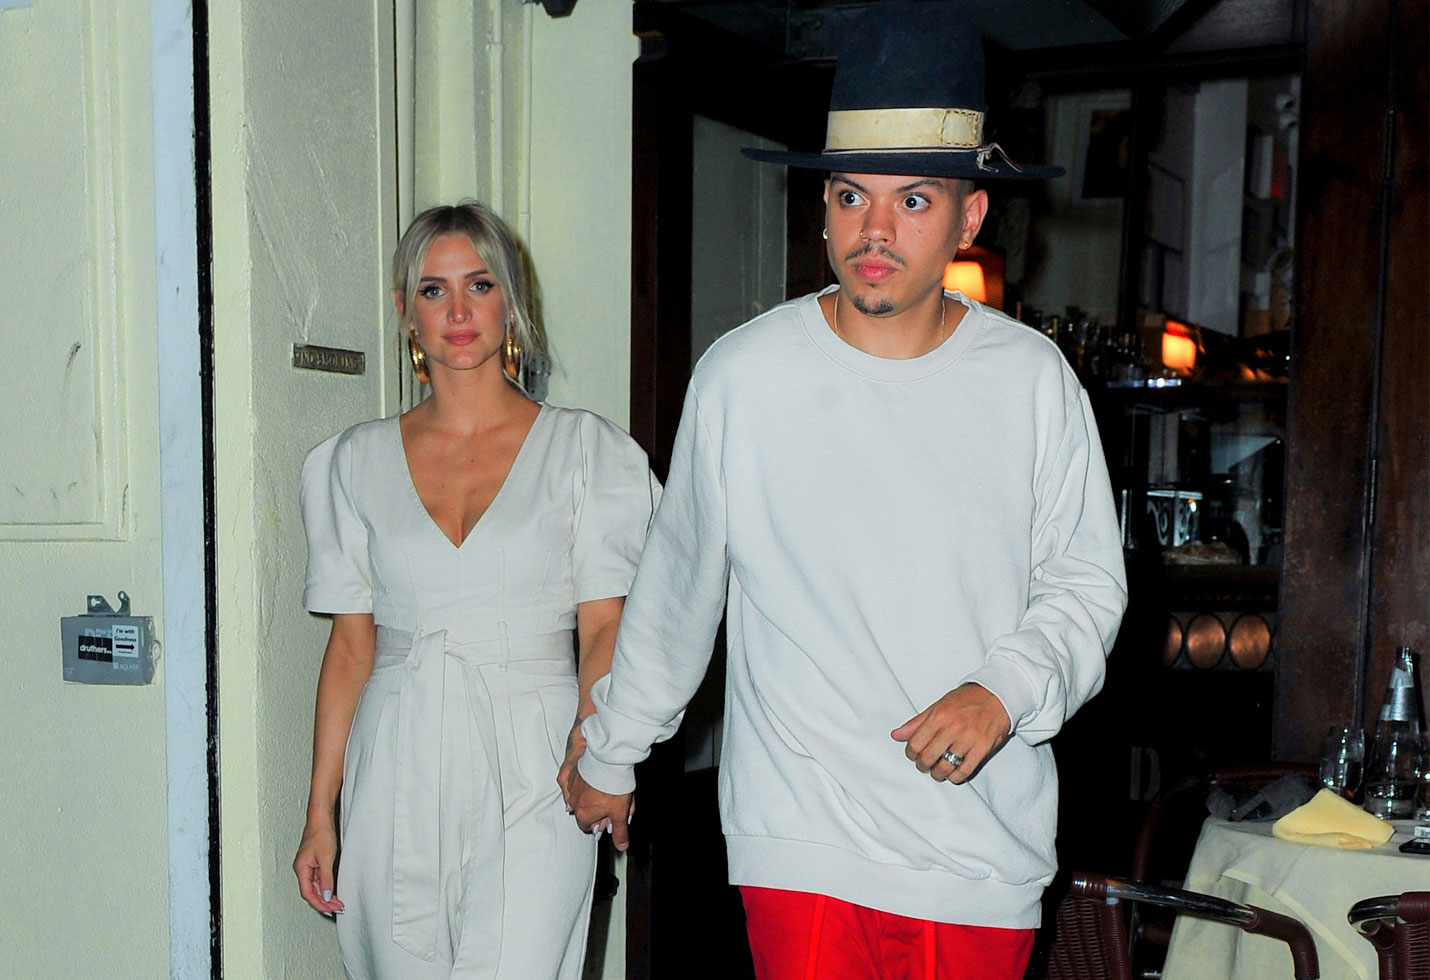 Ashlee Simpson and Evan Ross have a romantic night out in New York